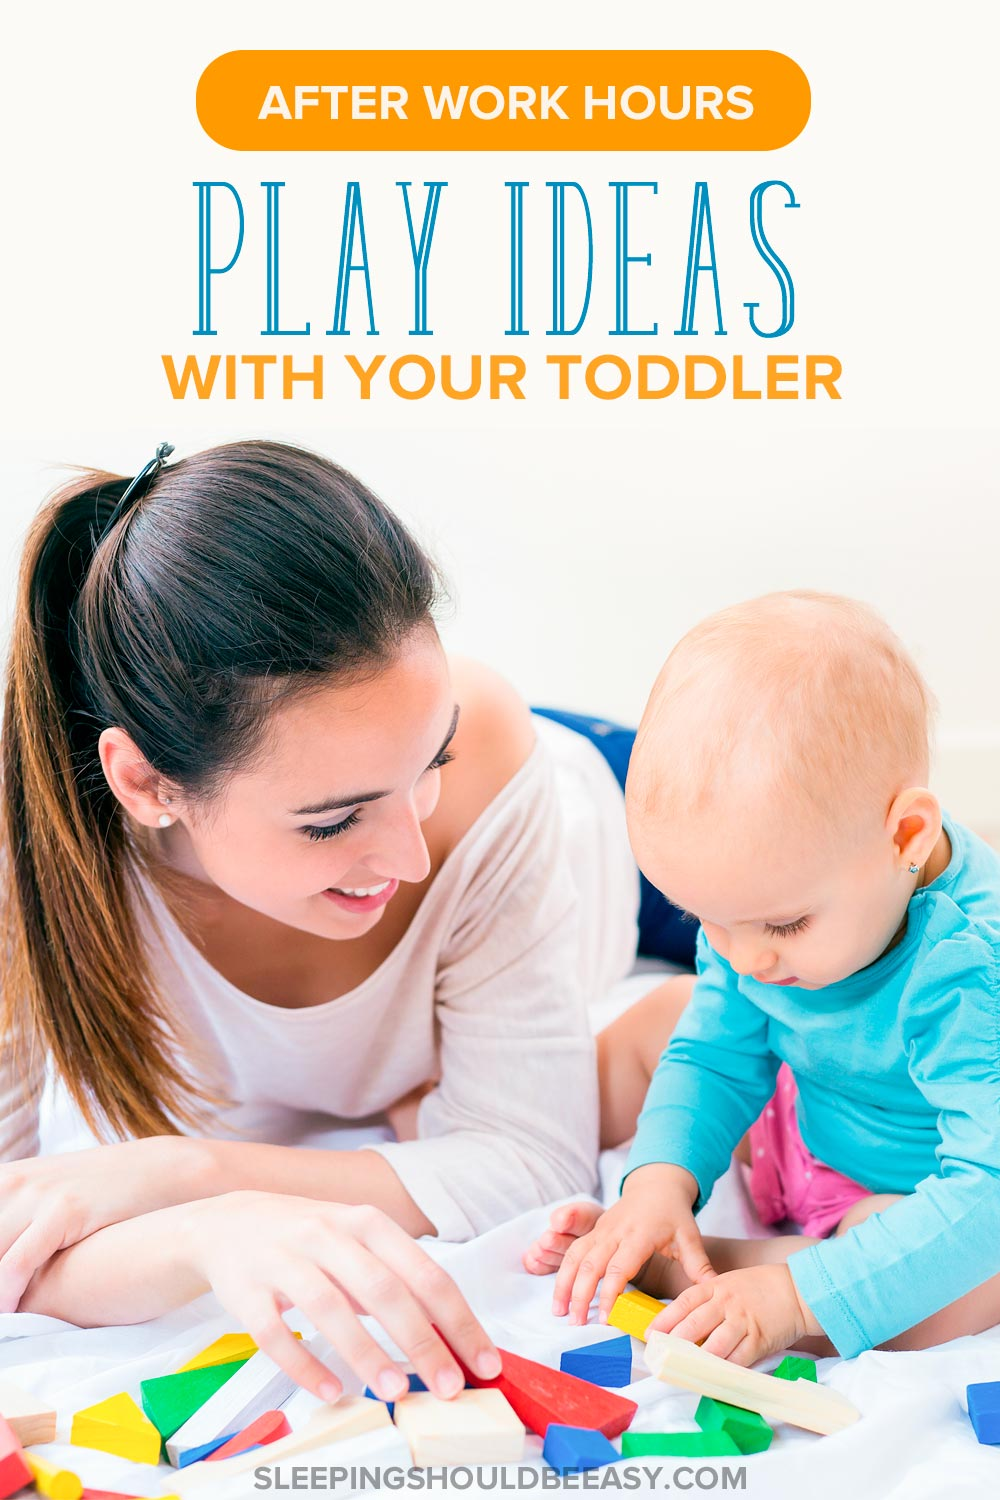 Want after work play ideas for toddlers? These fun activities offer quality time with your child during after work hours.